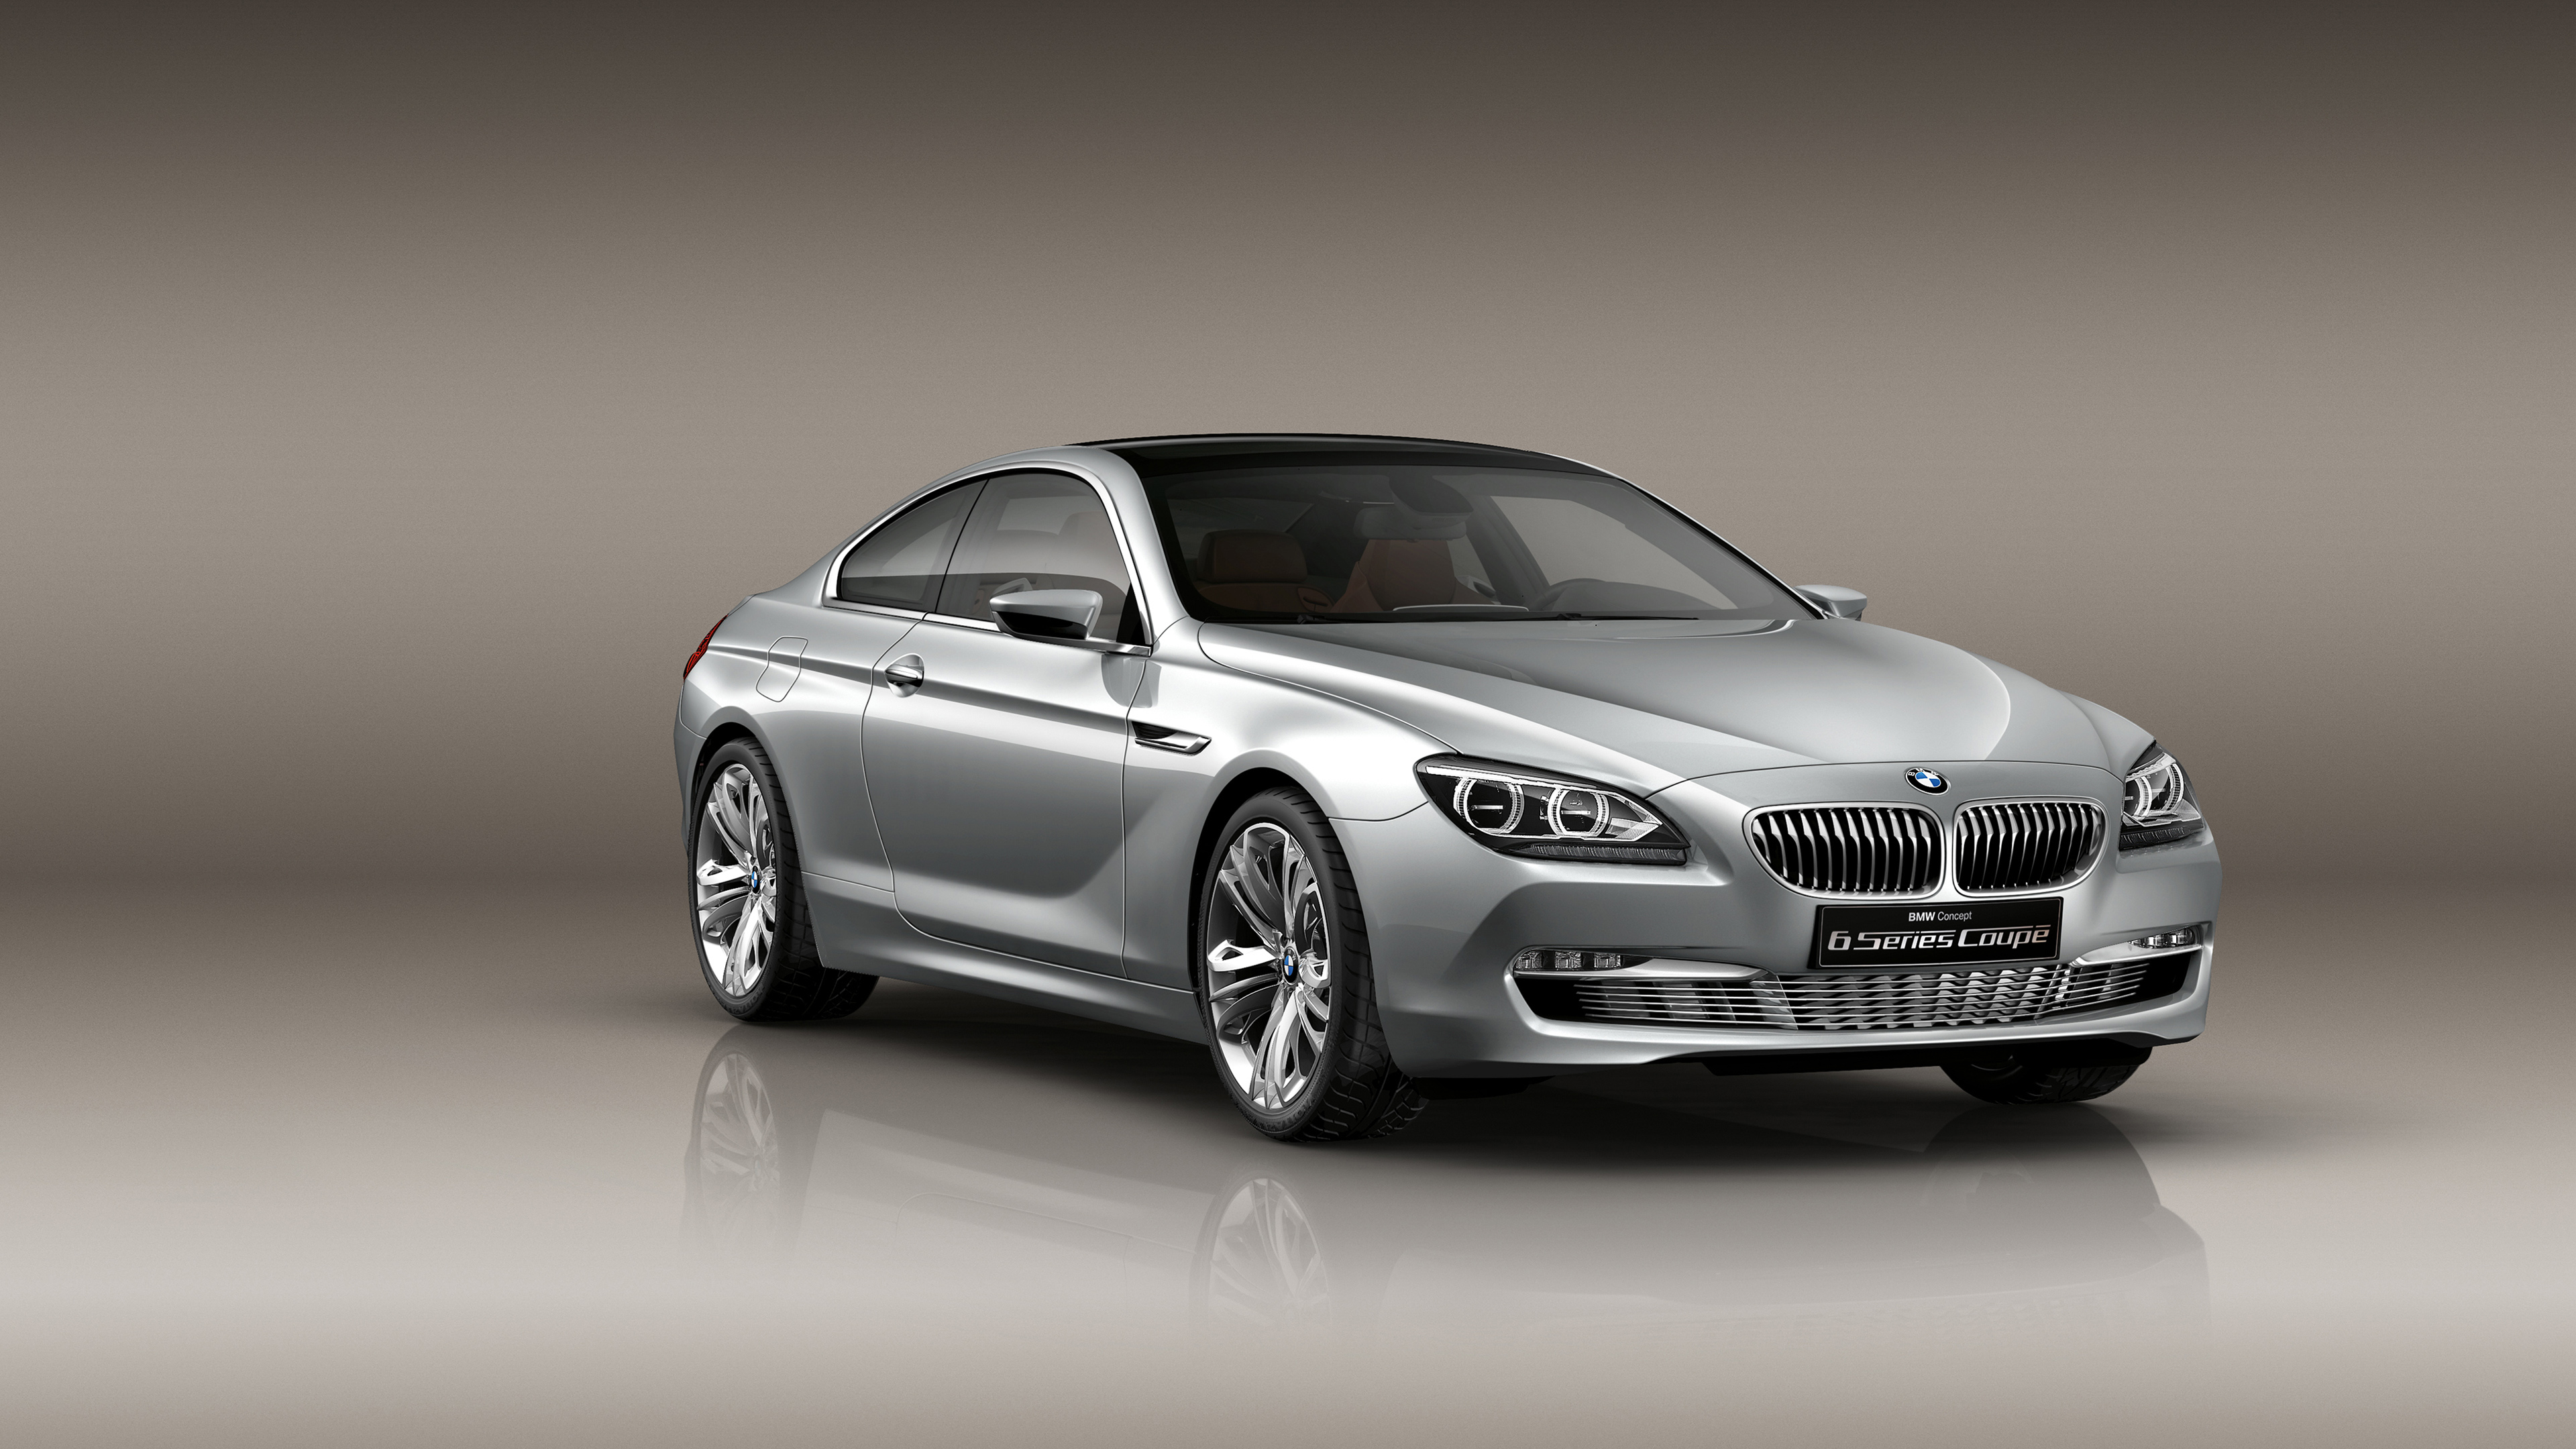 bmw 6 series gran coupe f13 wallpaper hd car wallpapers. Black Bedroom Furniture Sets. Home Design Ideas